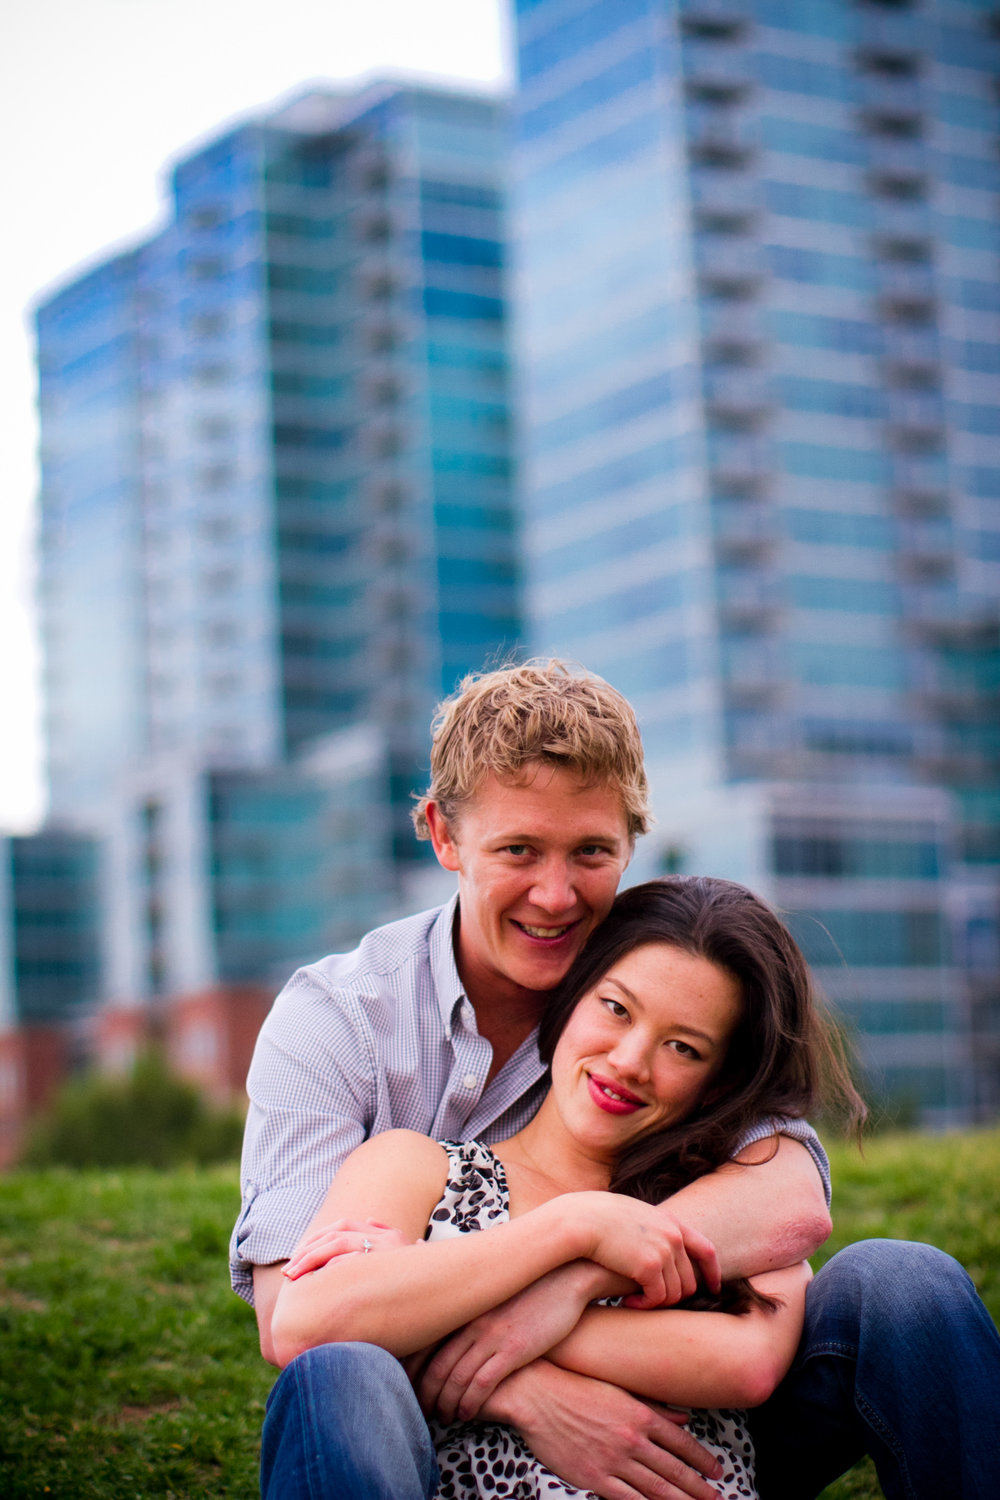 LoDo_Denver_Engagement_Photos_006.JPG